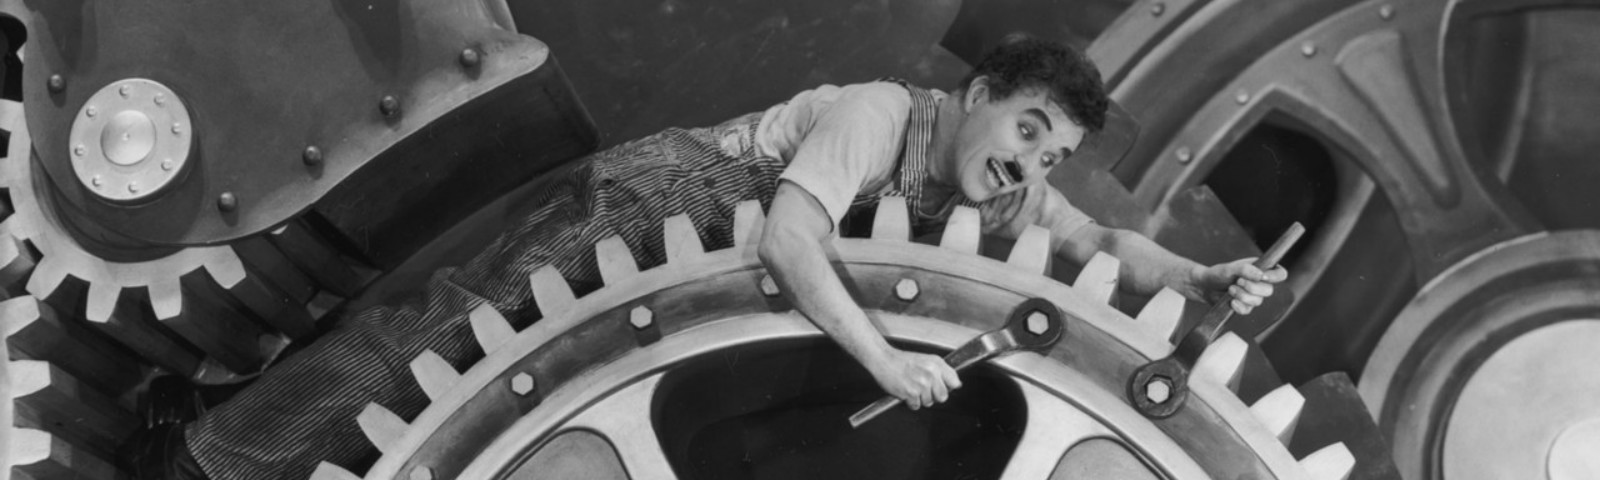 Charlie Chaplin's Modern Times criticized the propensity of industry to rule over humanity.